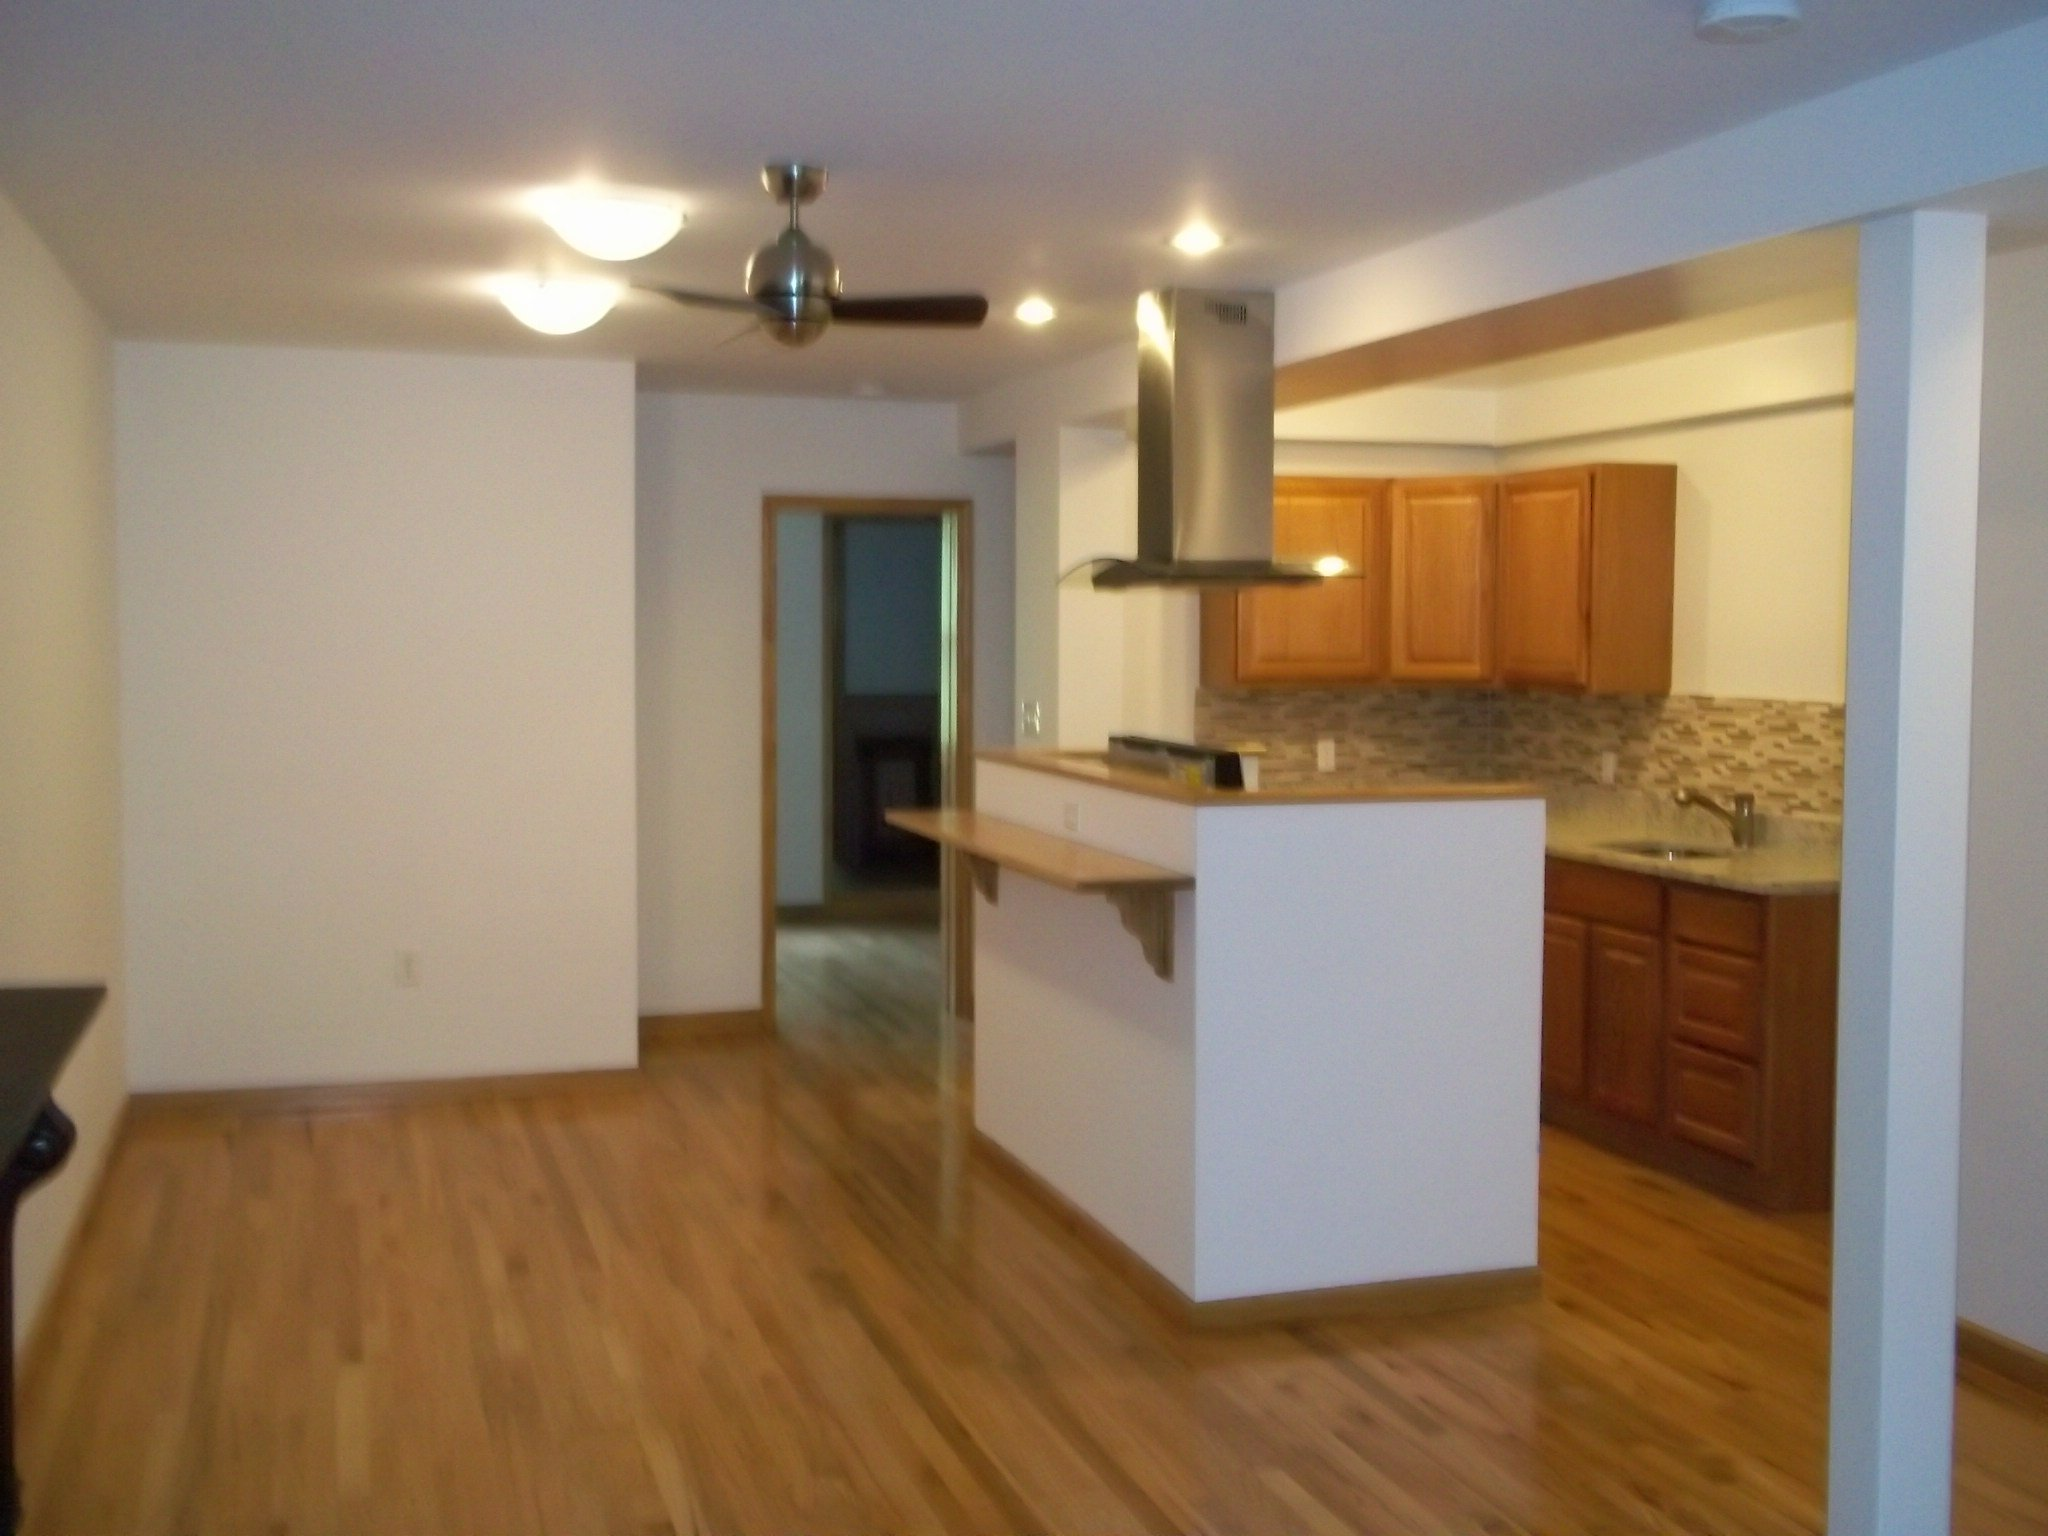 Stuyvesant Heights 1 Bedroom Apartment for Rent Brooklyn